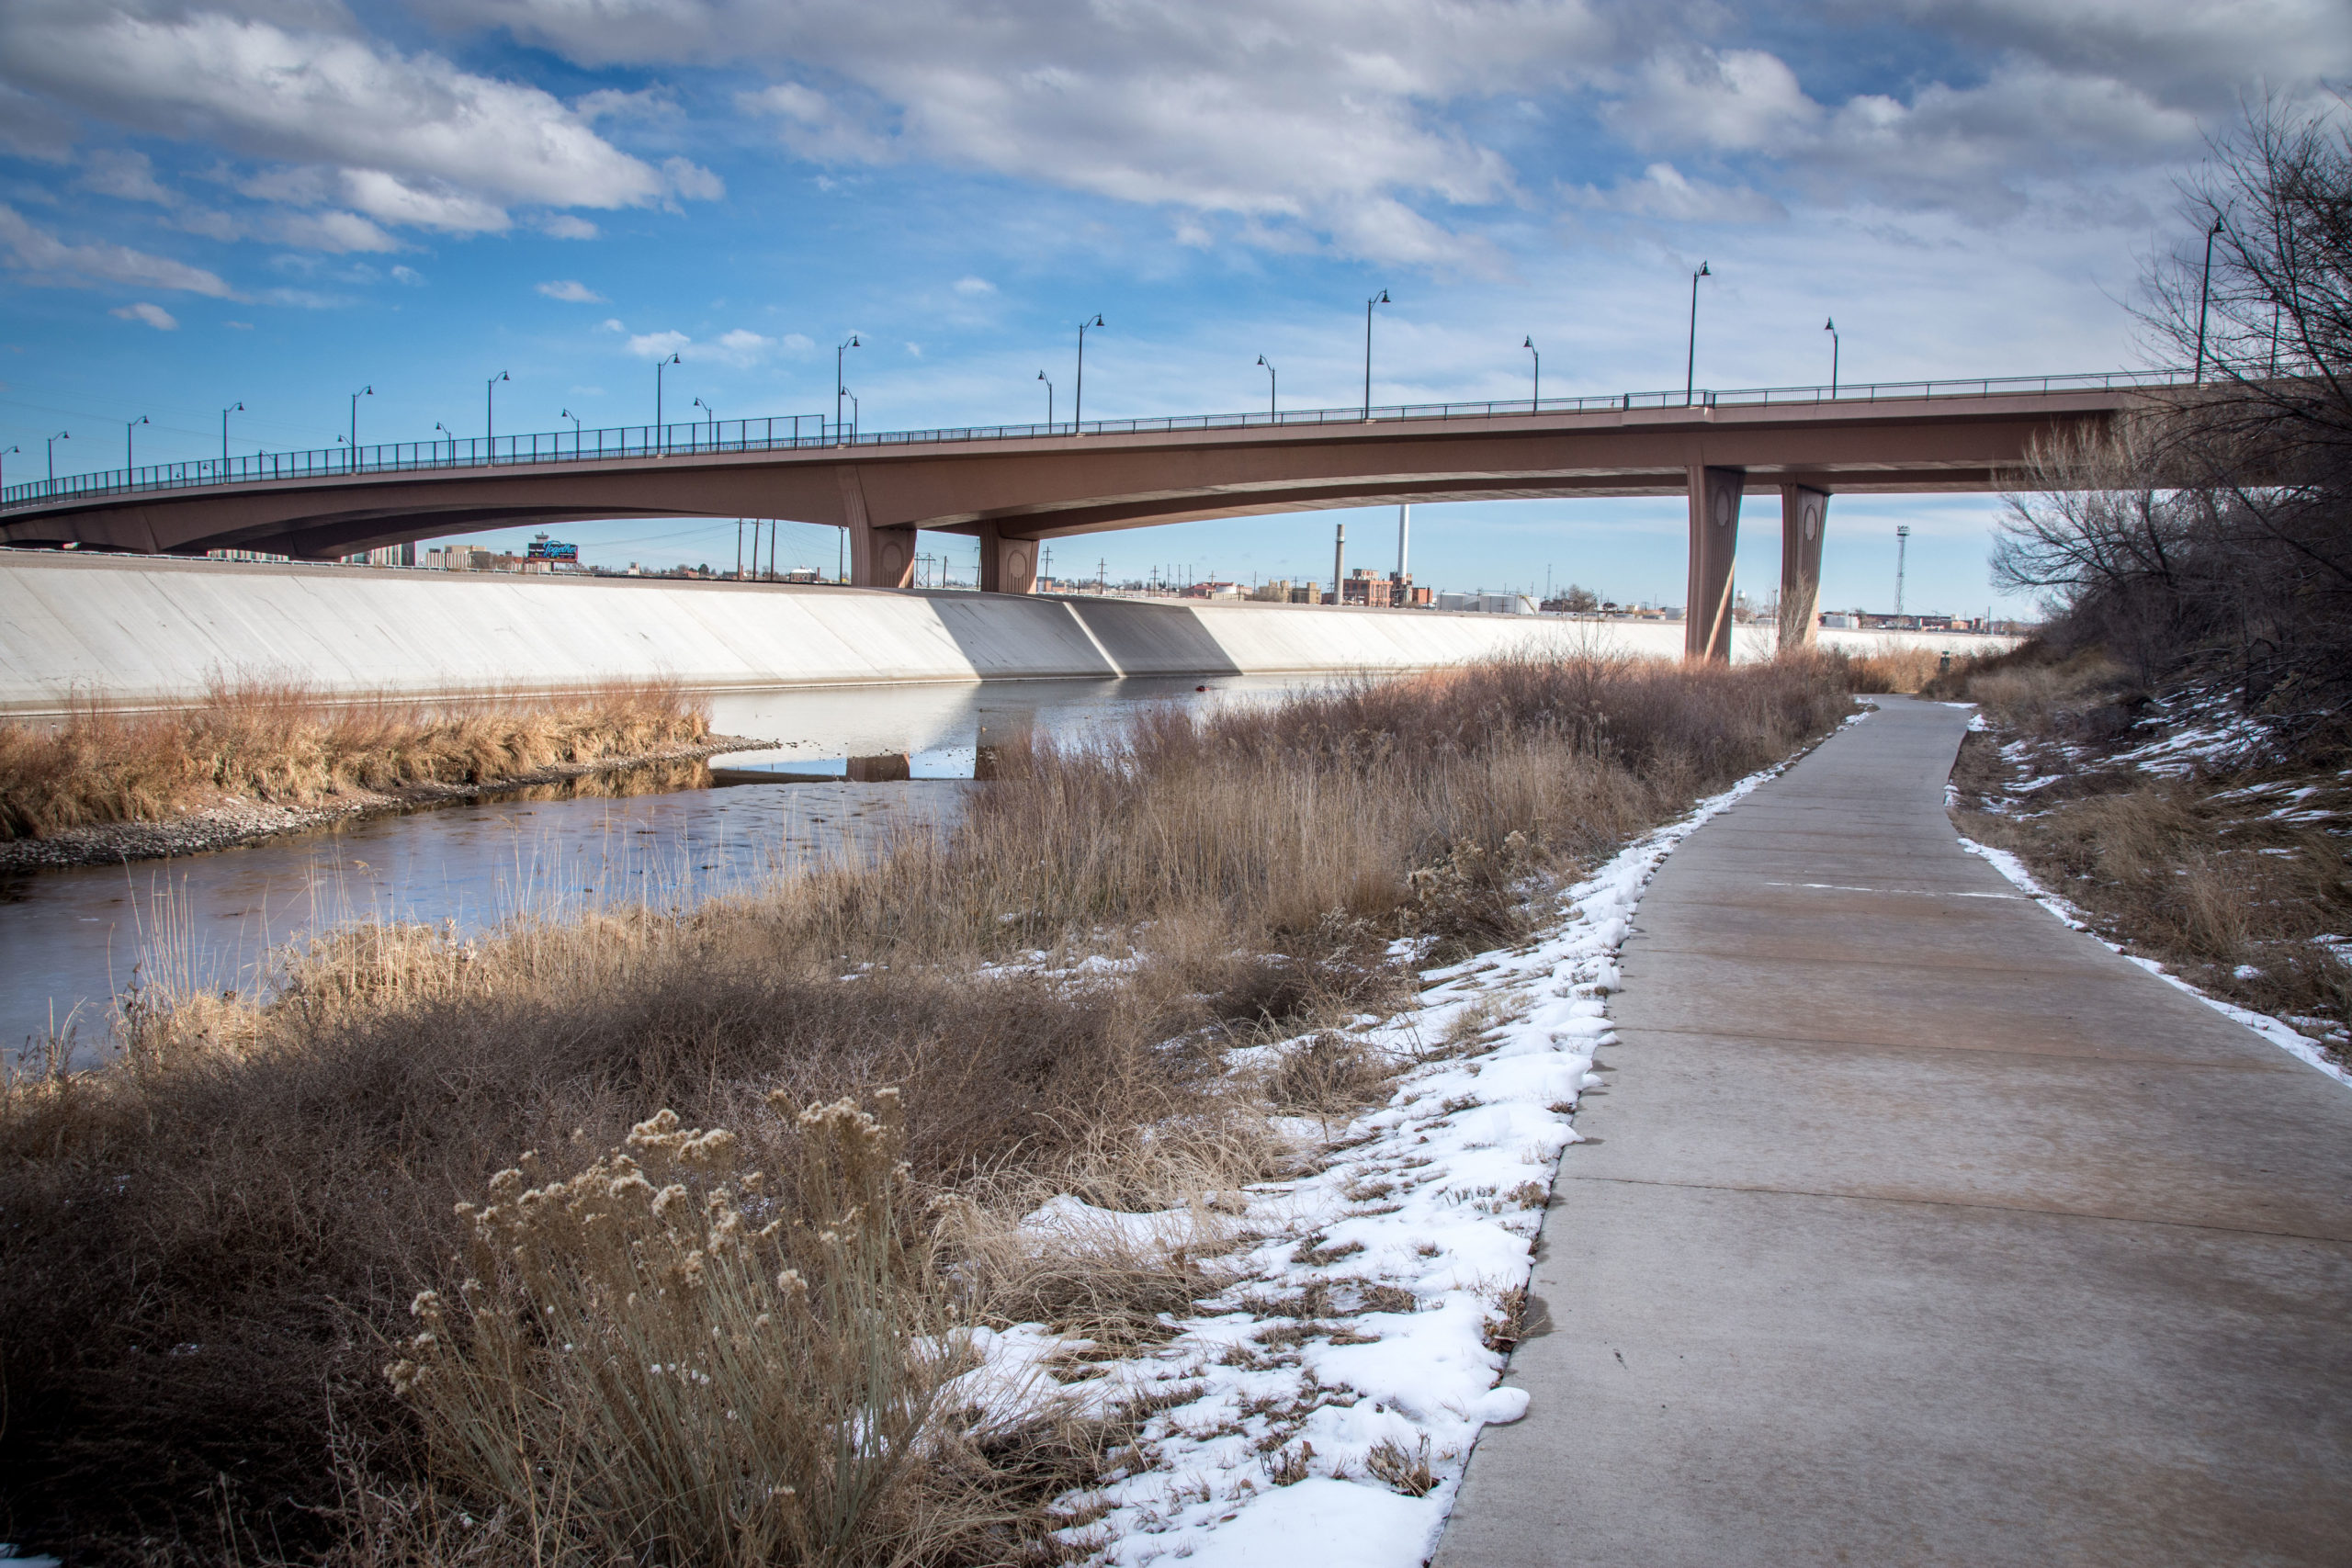 The hiking and biking path across from the Arkansas River Levee in Pueblo, Colo., Nov. 29, 2019. The levee was constructed to protect the city after 1921's devastating flood.